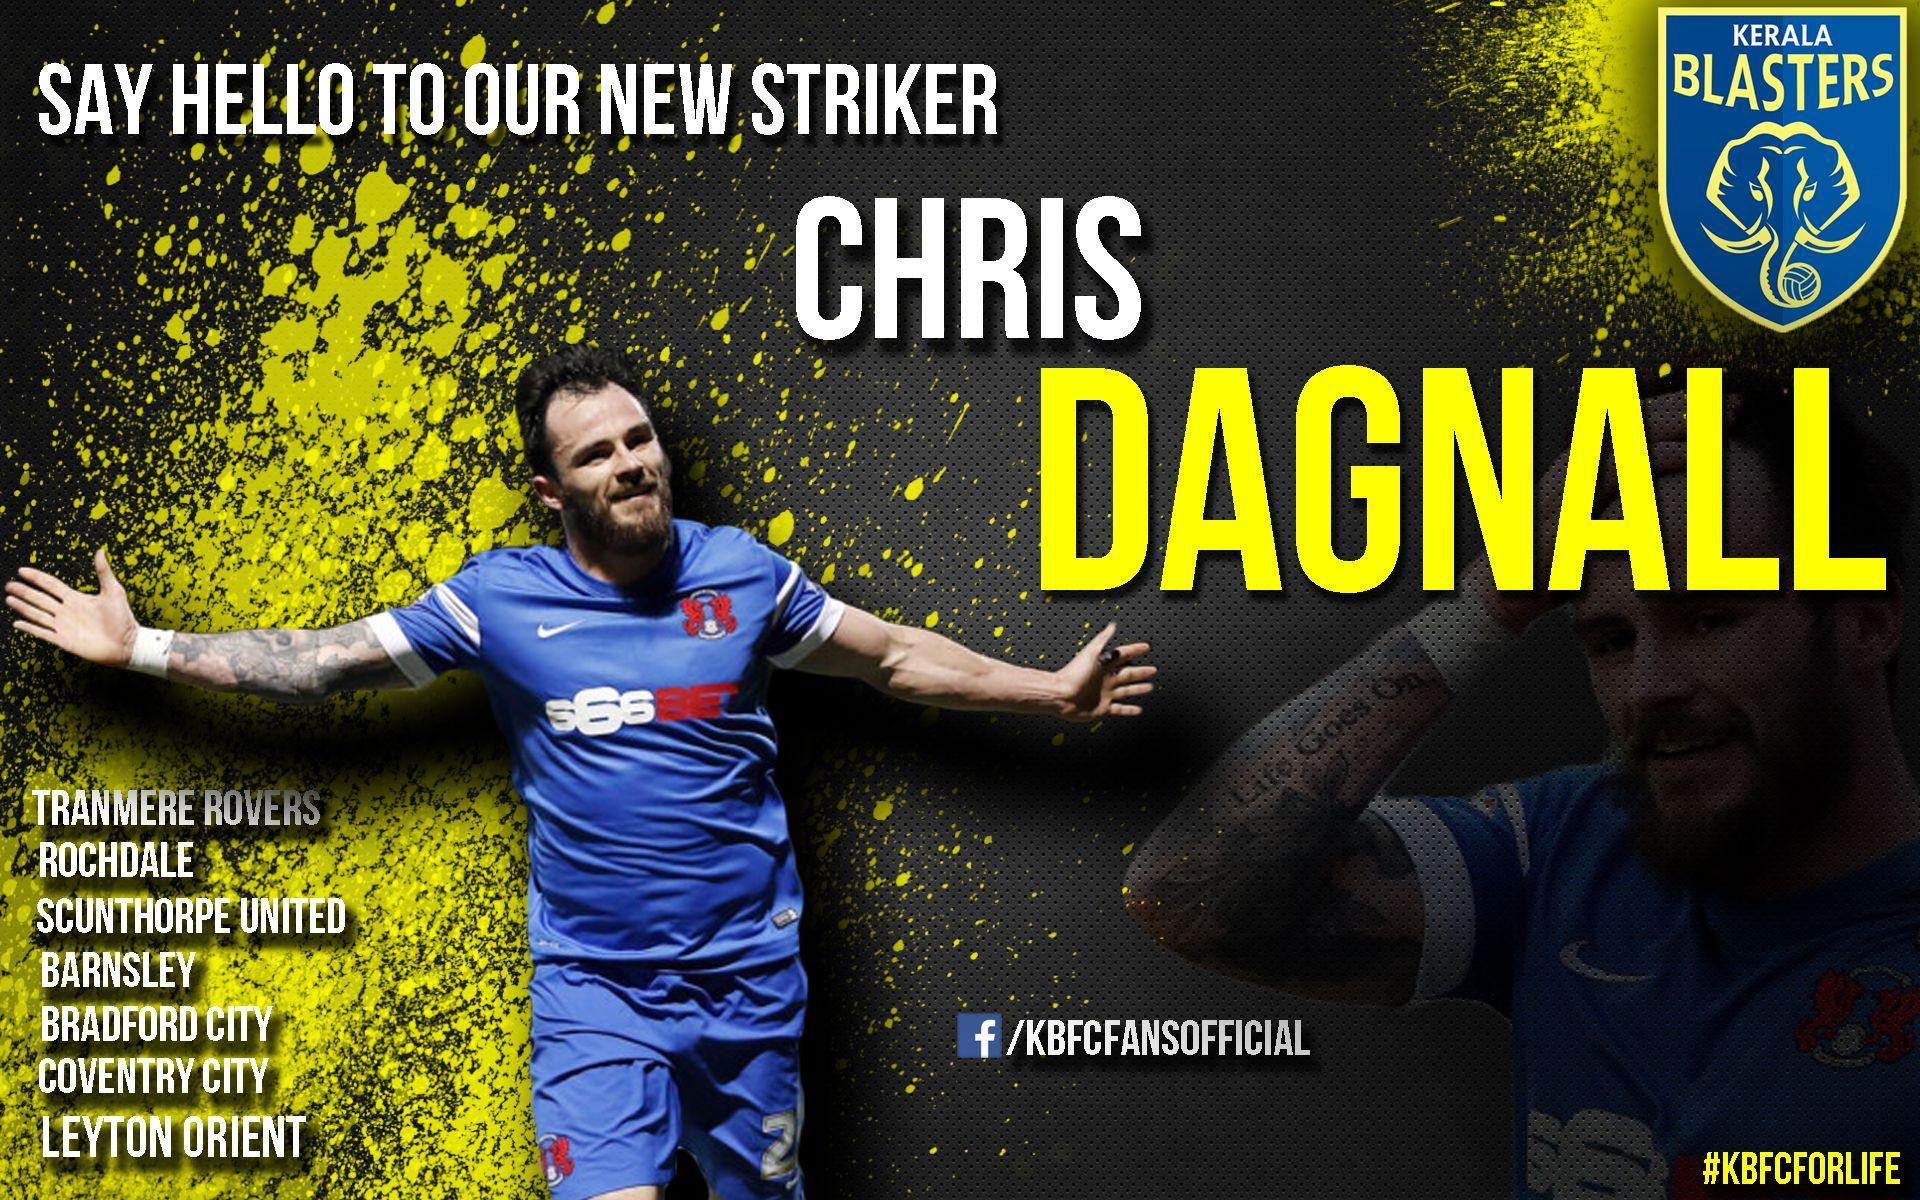 Here is the New Striker of +Kerala Blasters ! ##ChrisDagnall ...